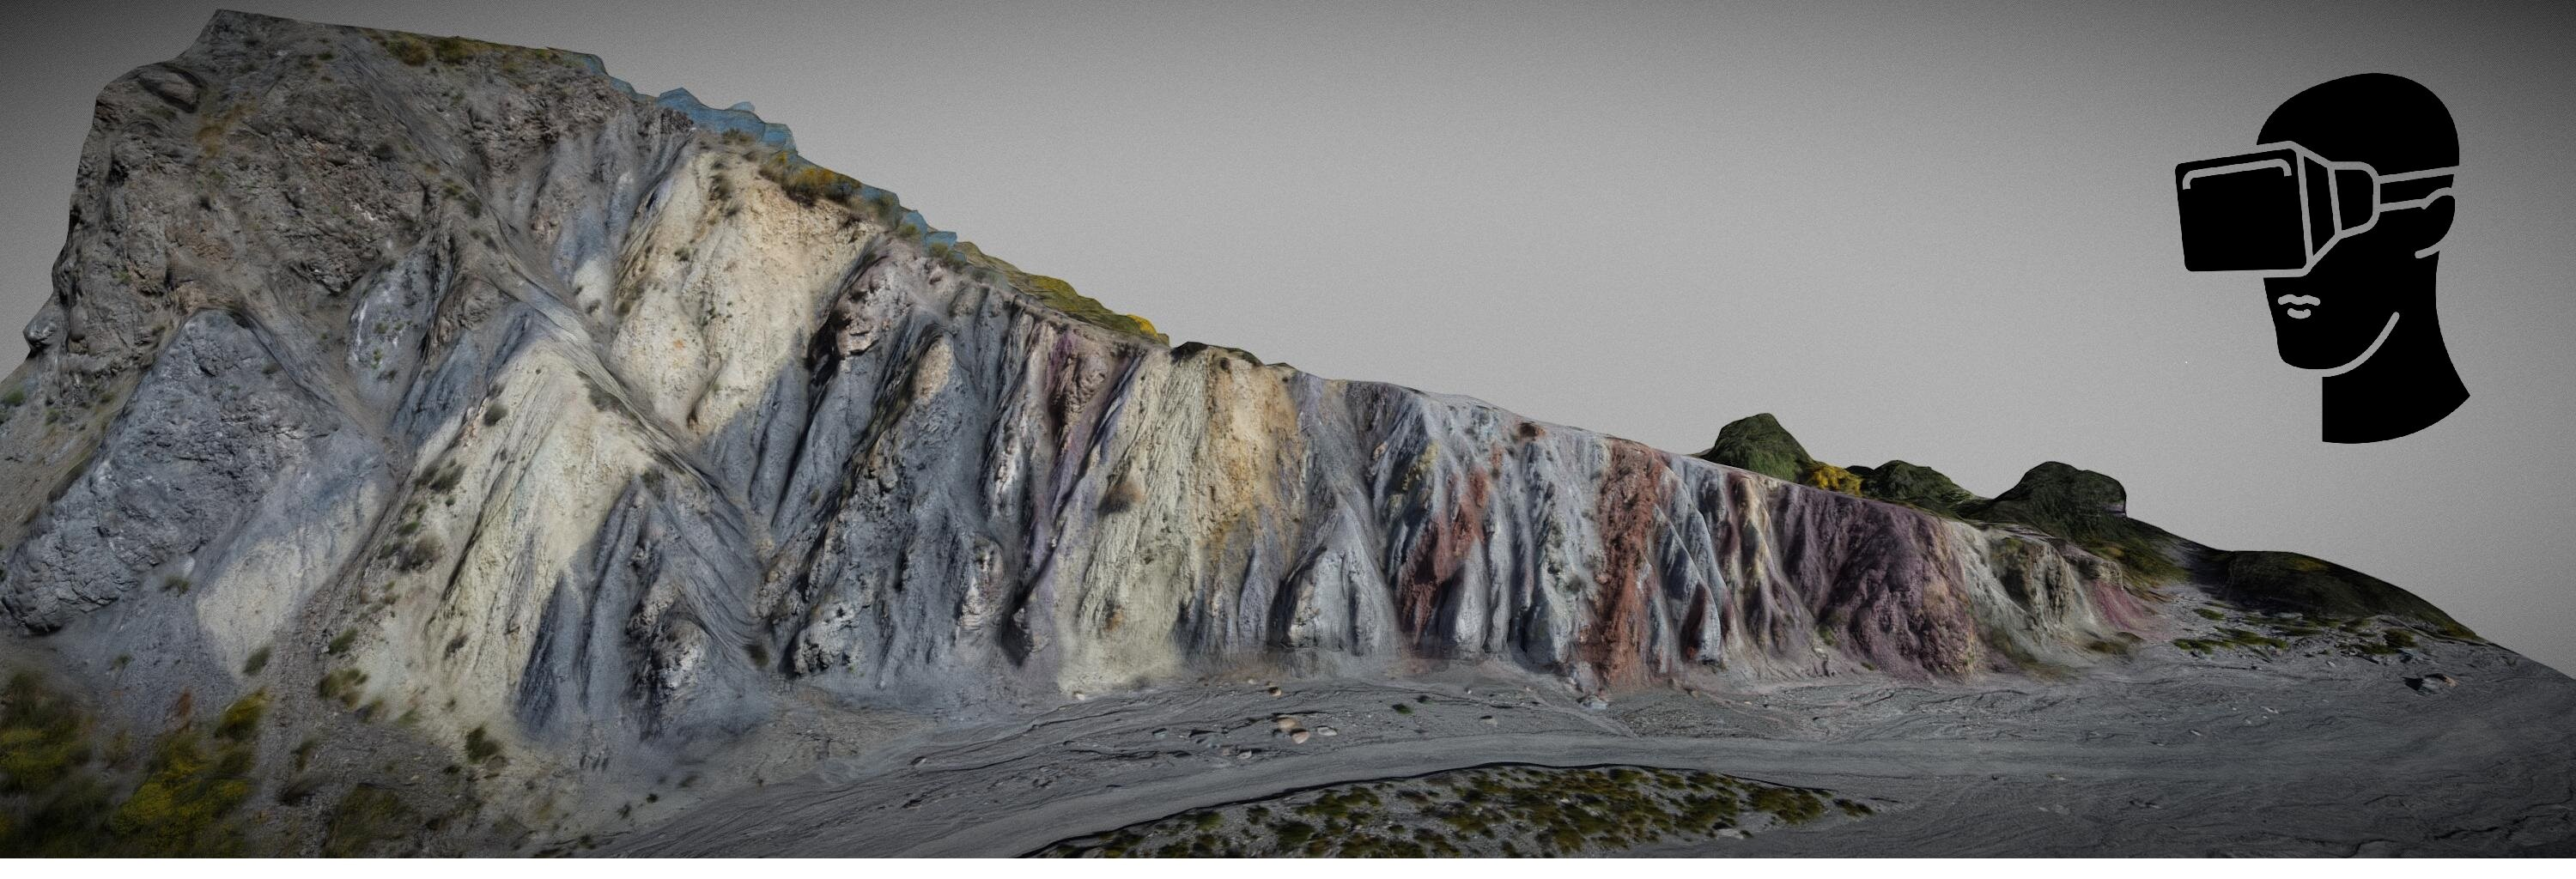 Apoorv Avasthy: Developing Field Resources for Geology